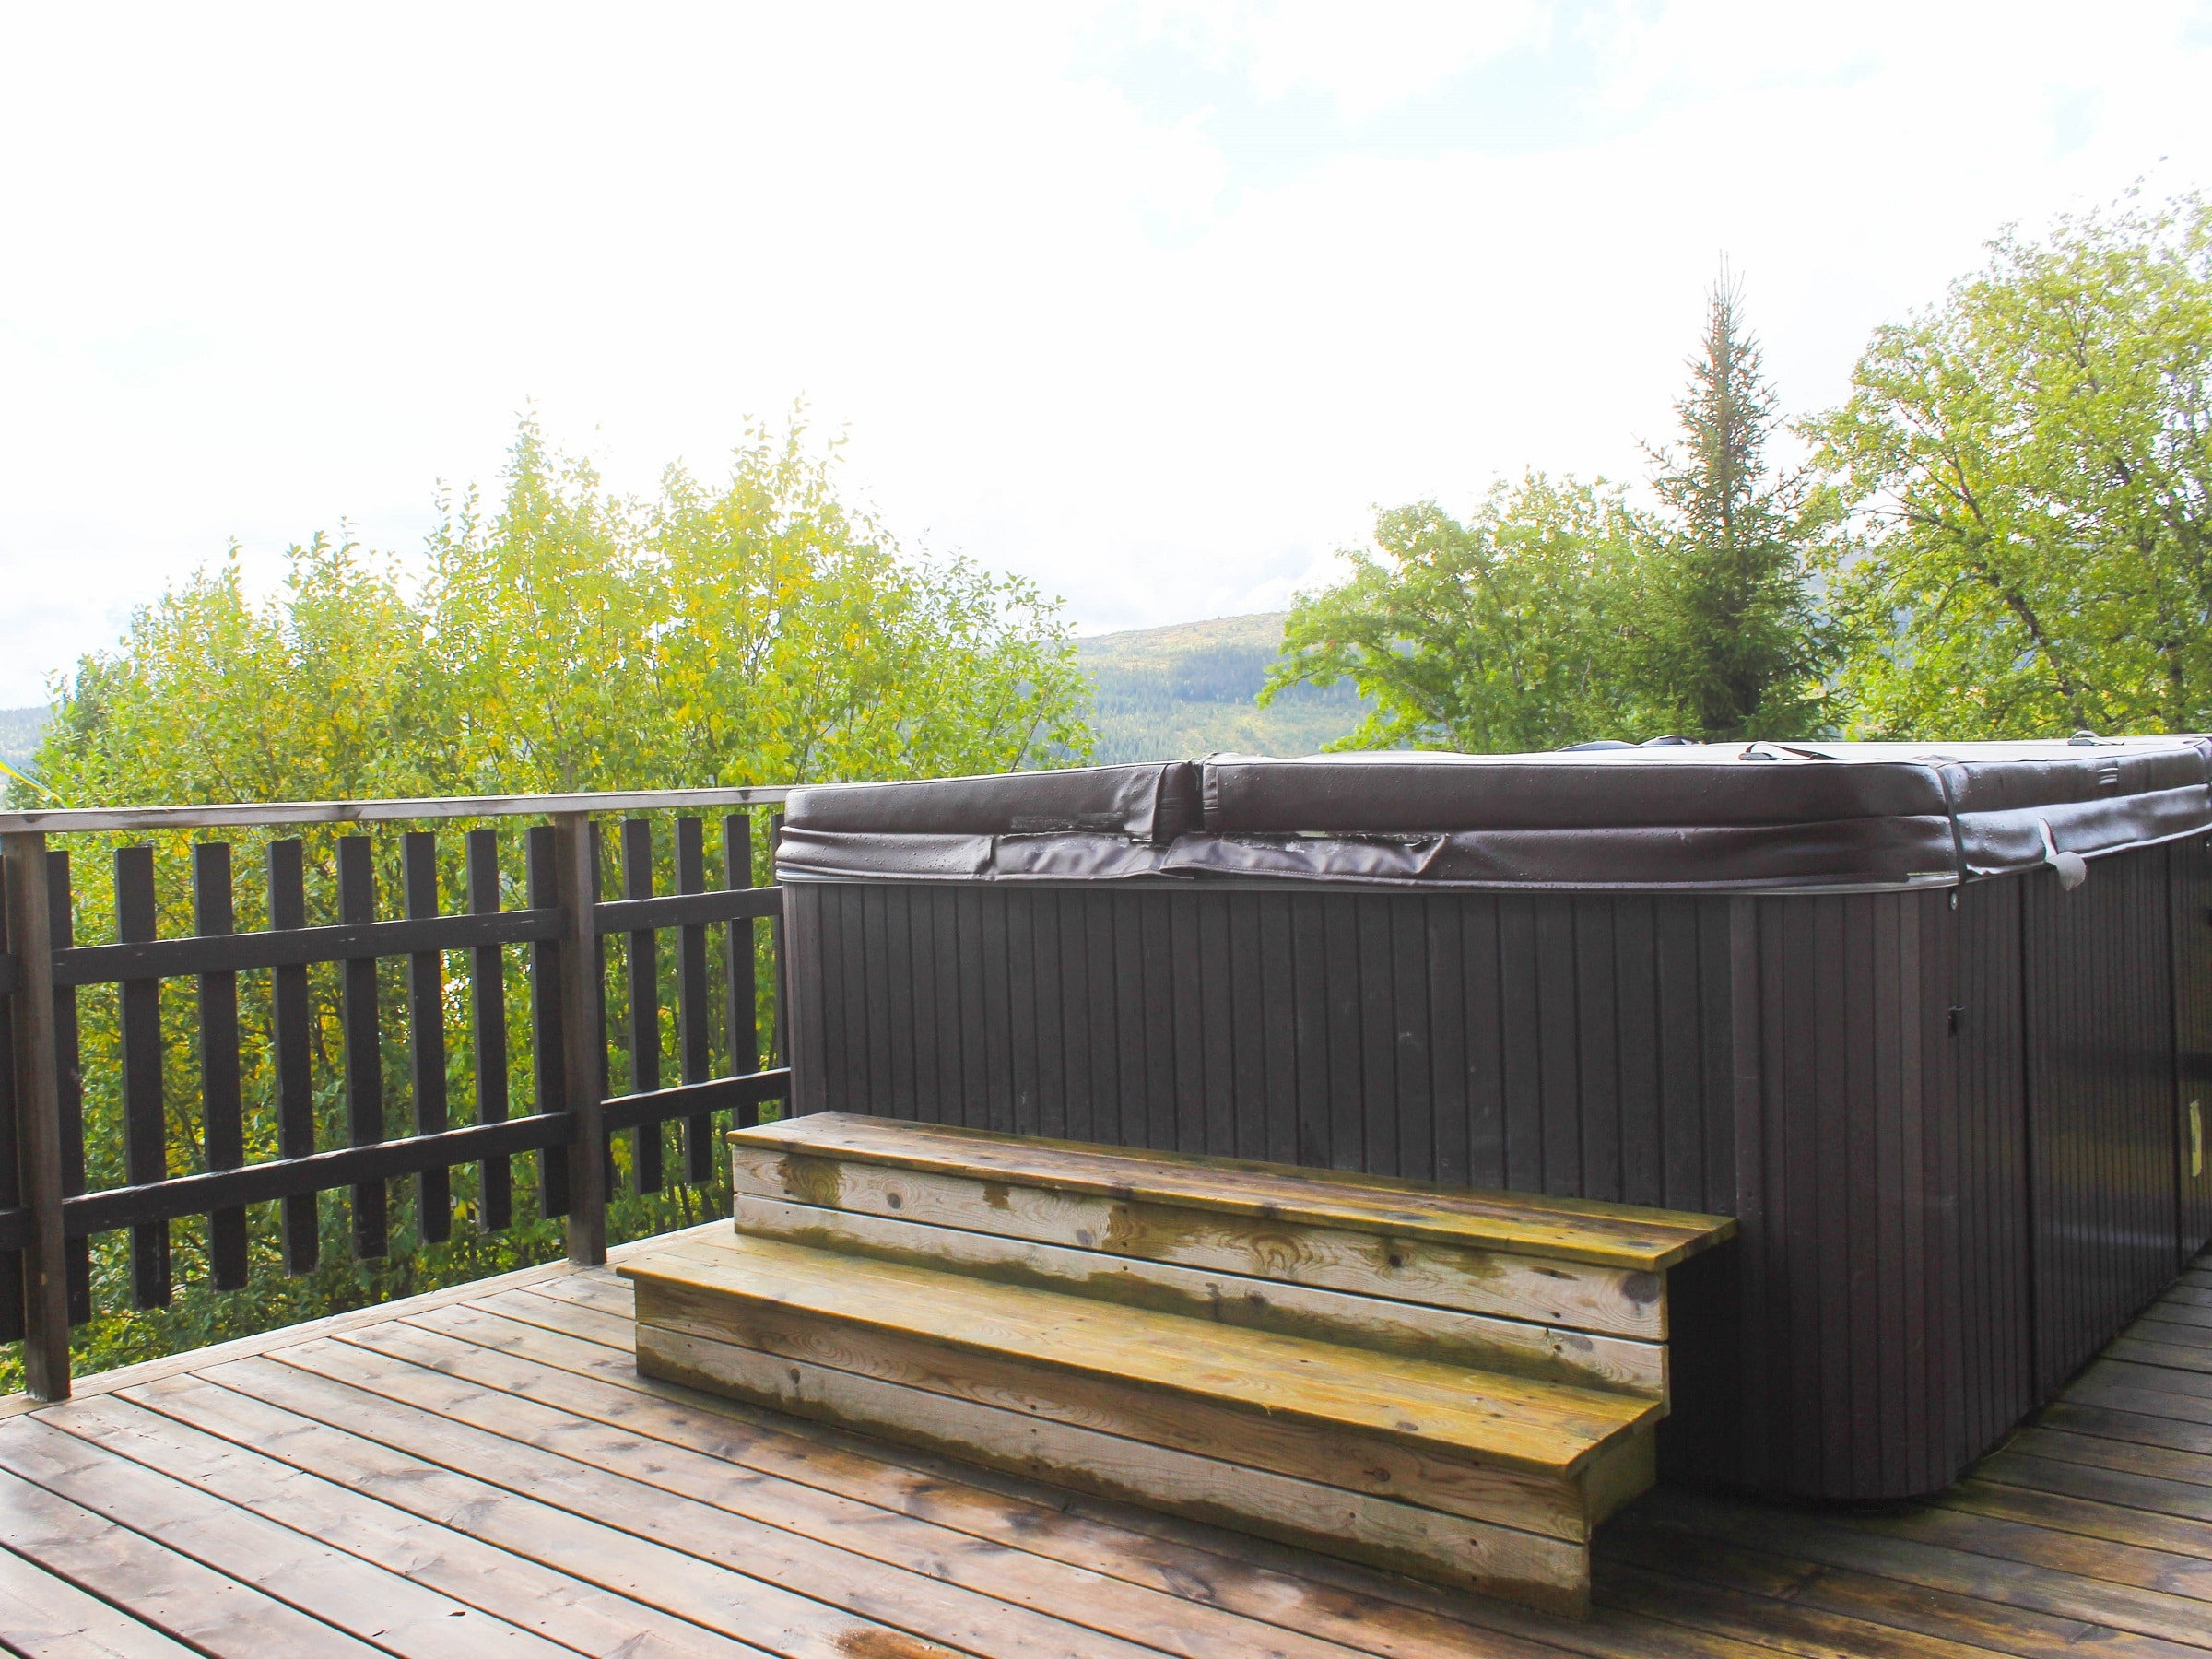 Jacuzzi with a view of the mountains in Björnängelägret in Åre